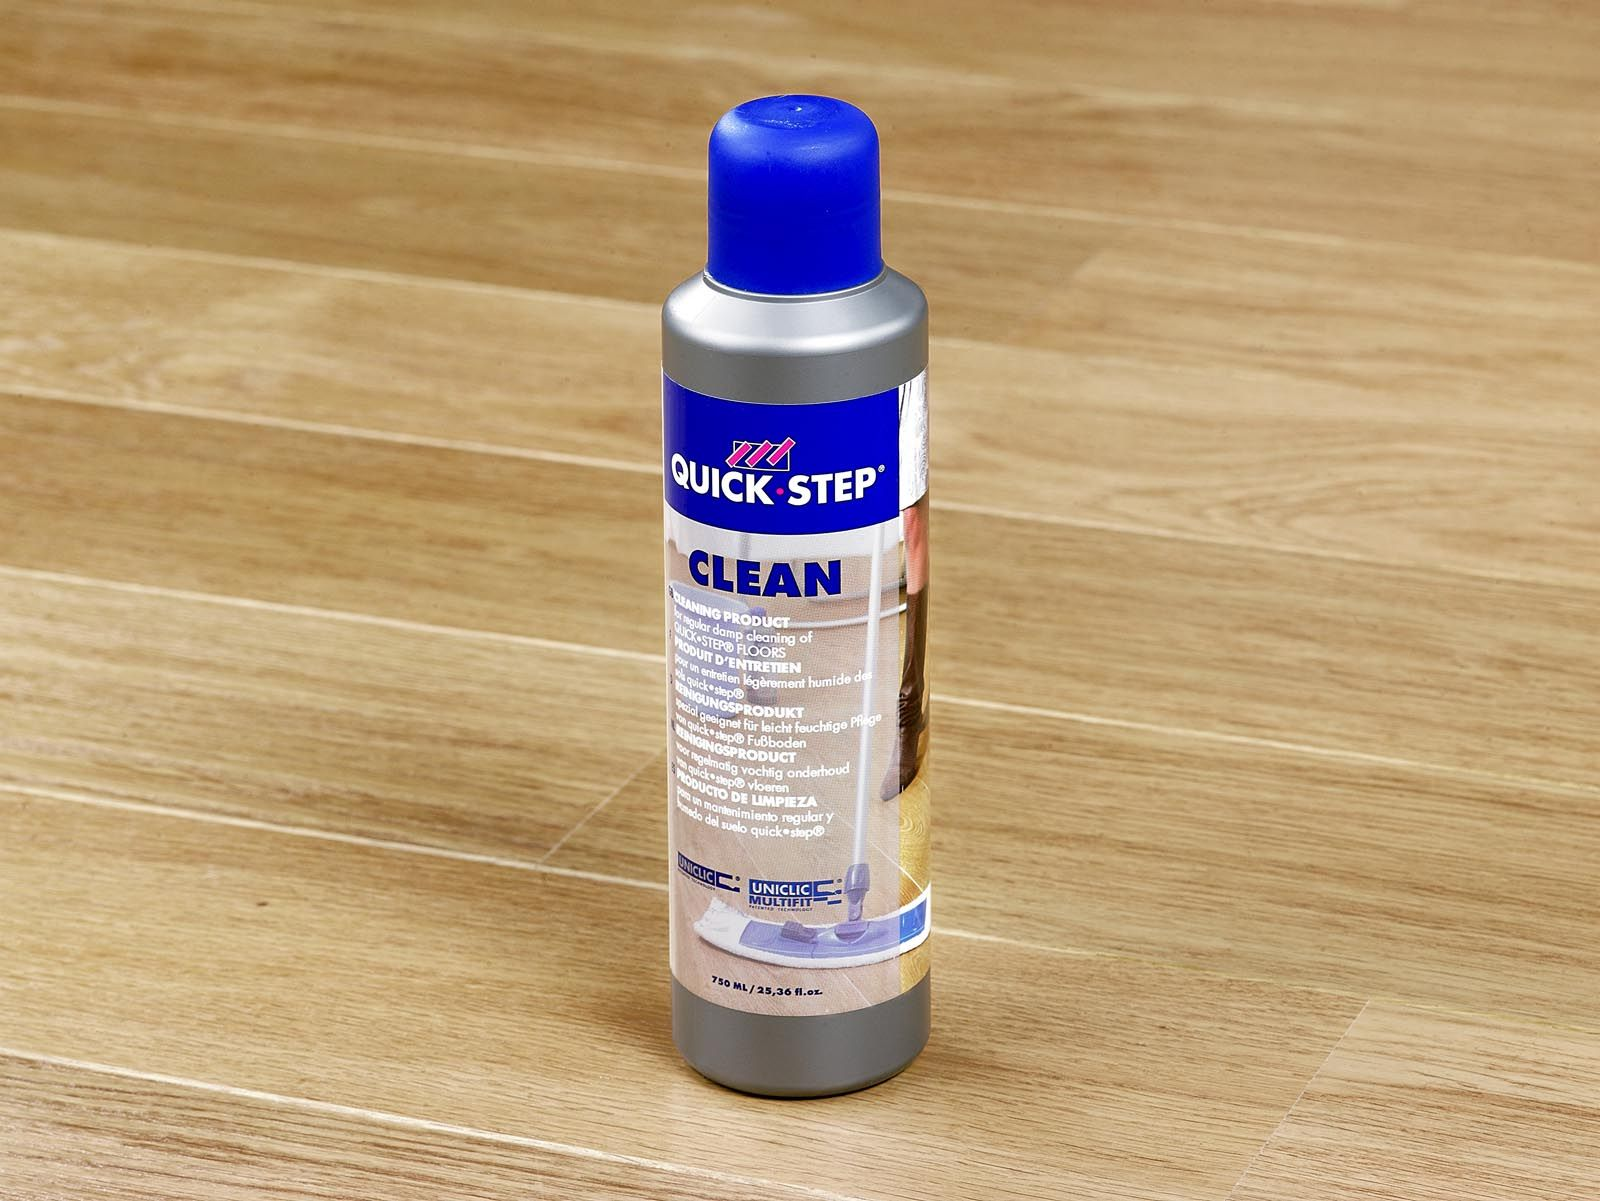 Puhdistusaine Quick Step Clean 750 ml